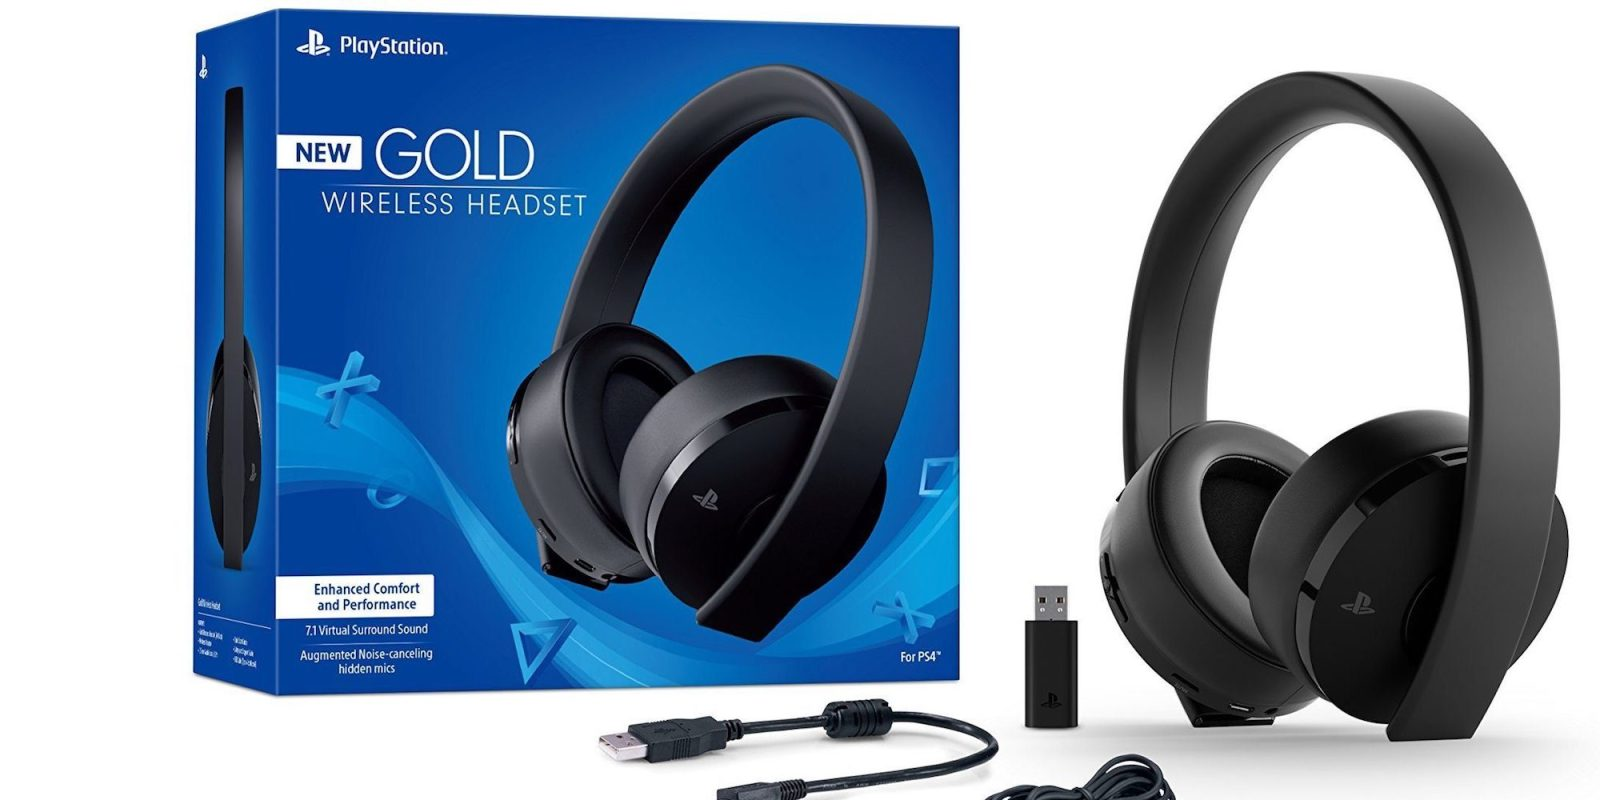 PlayStation Gold Wireless Headset with 7.1 surround sound now $60 (Reg. $74+)